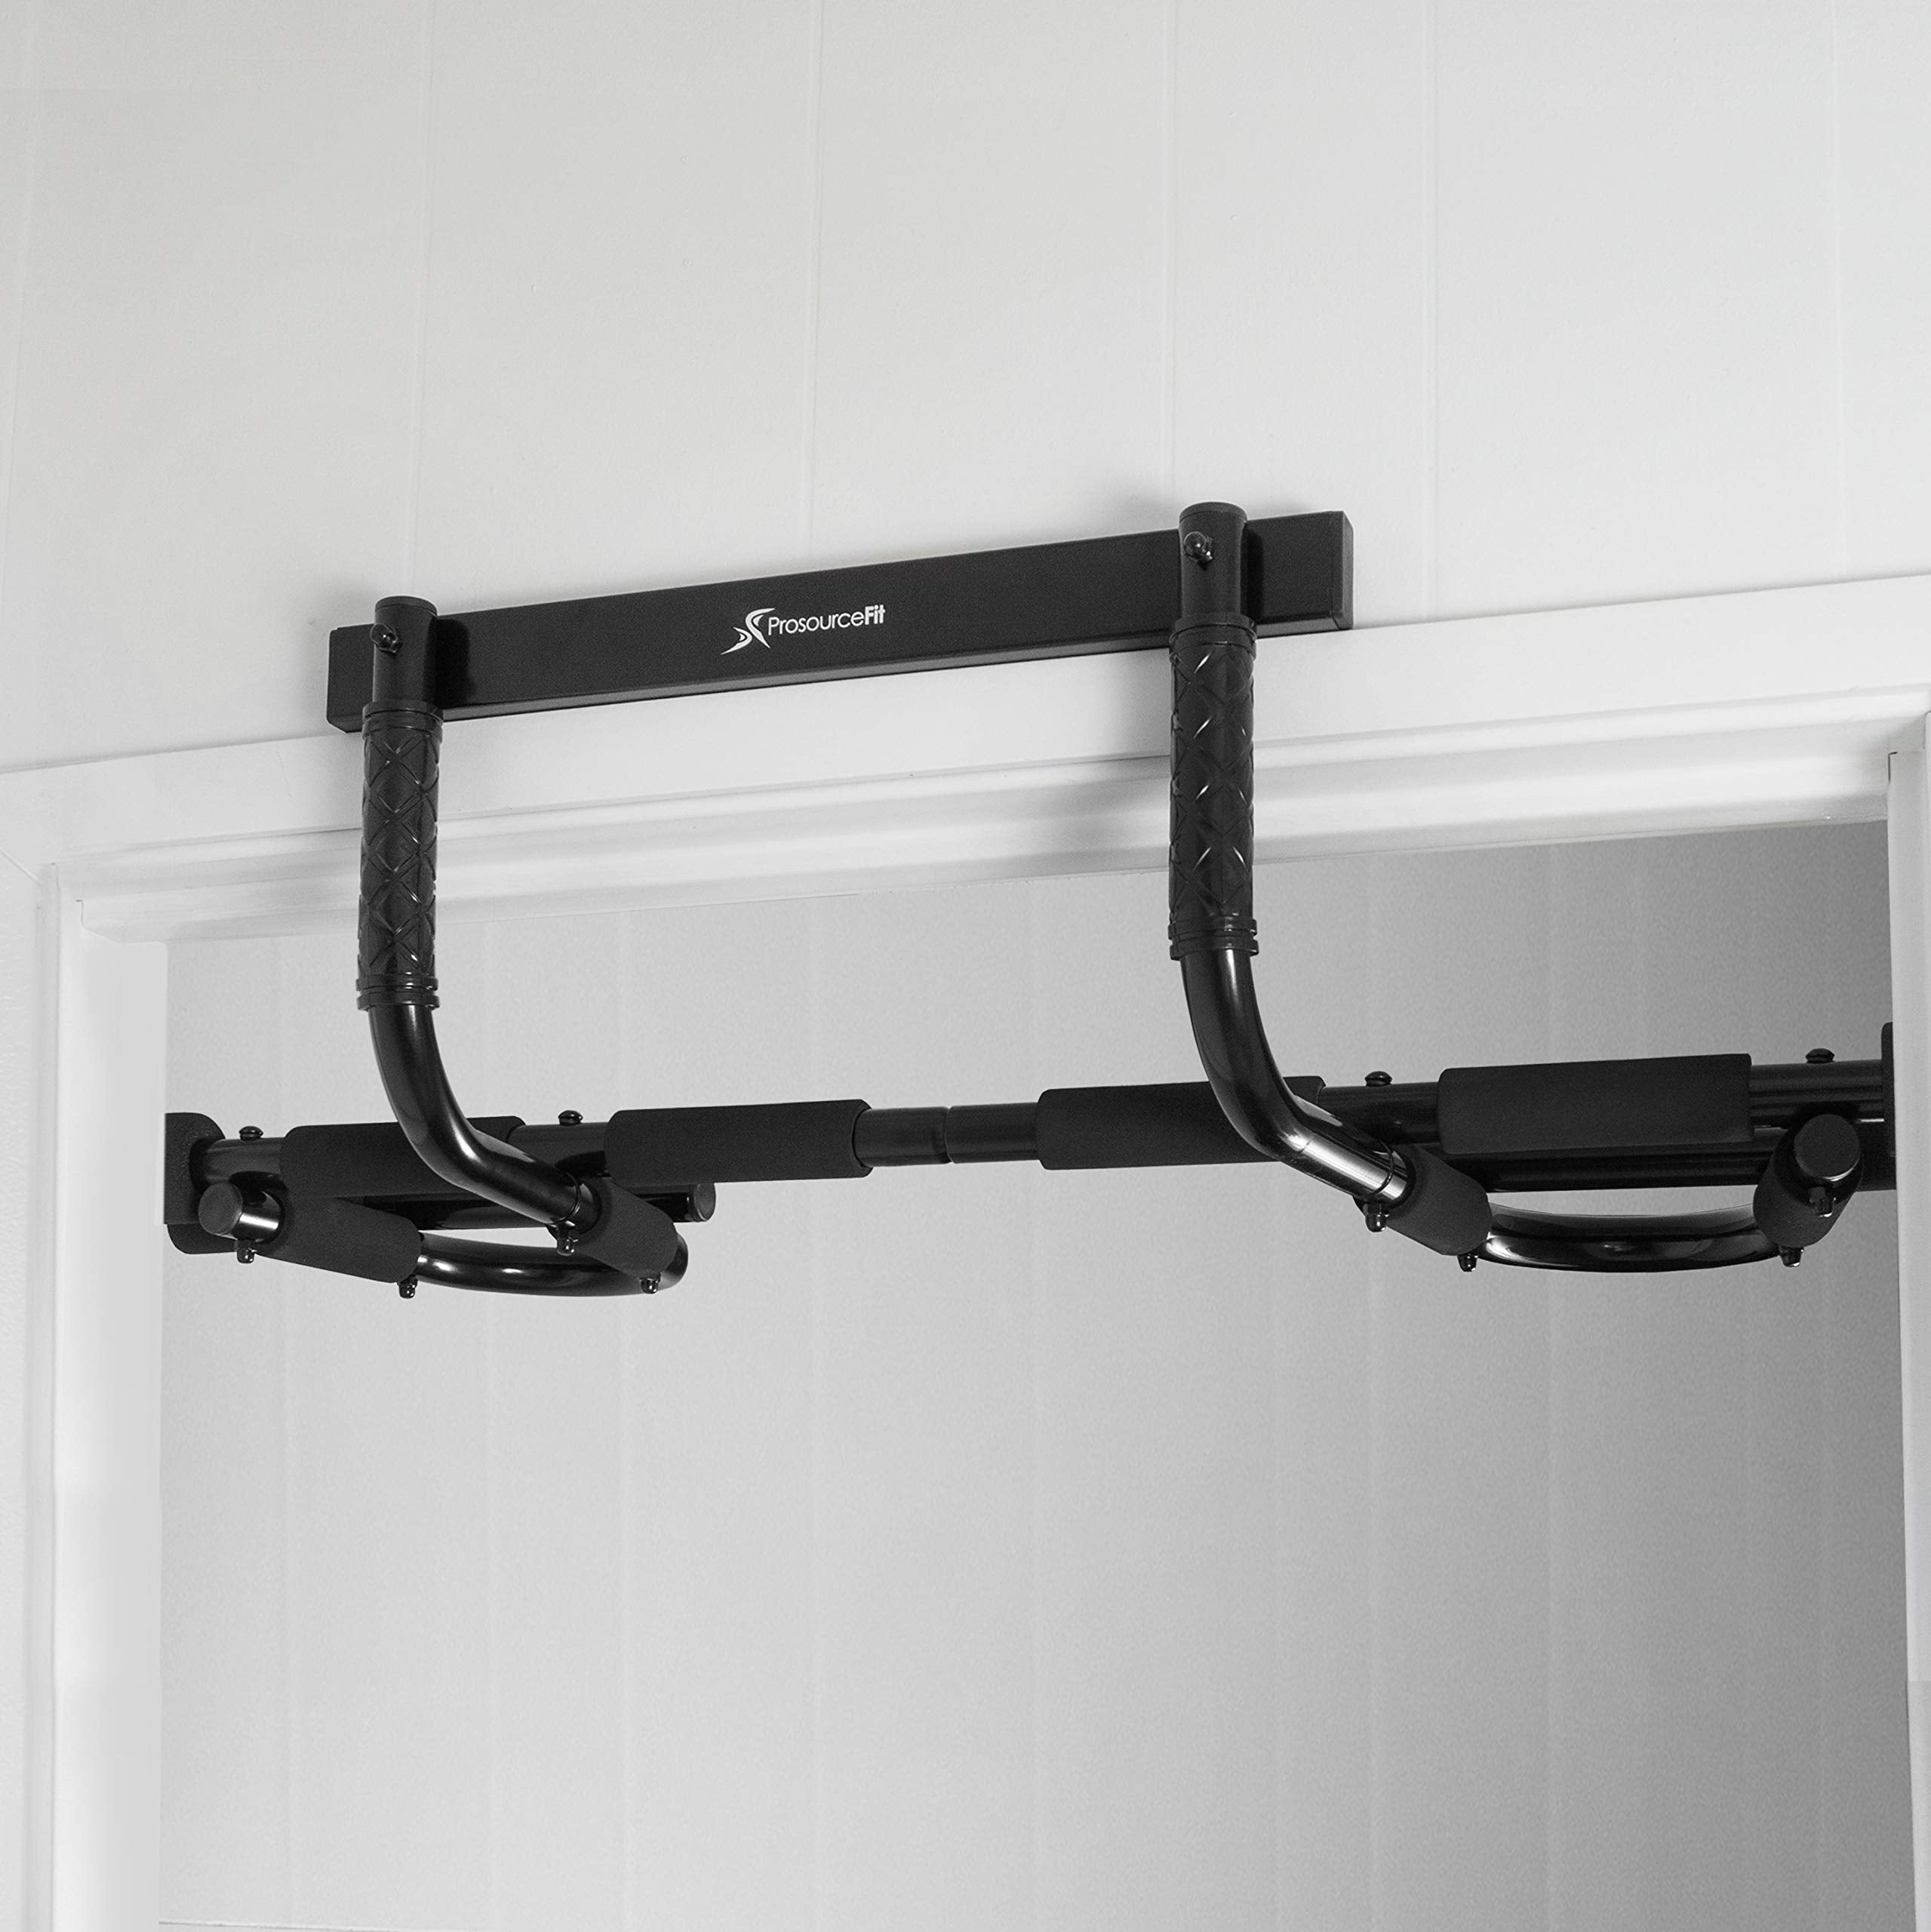 Prosource Fit Multi-Grip Chin-Up/Pull-Up Bar, Heavy Duty Doorway Trainer for Home Gym